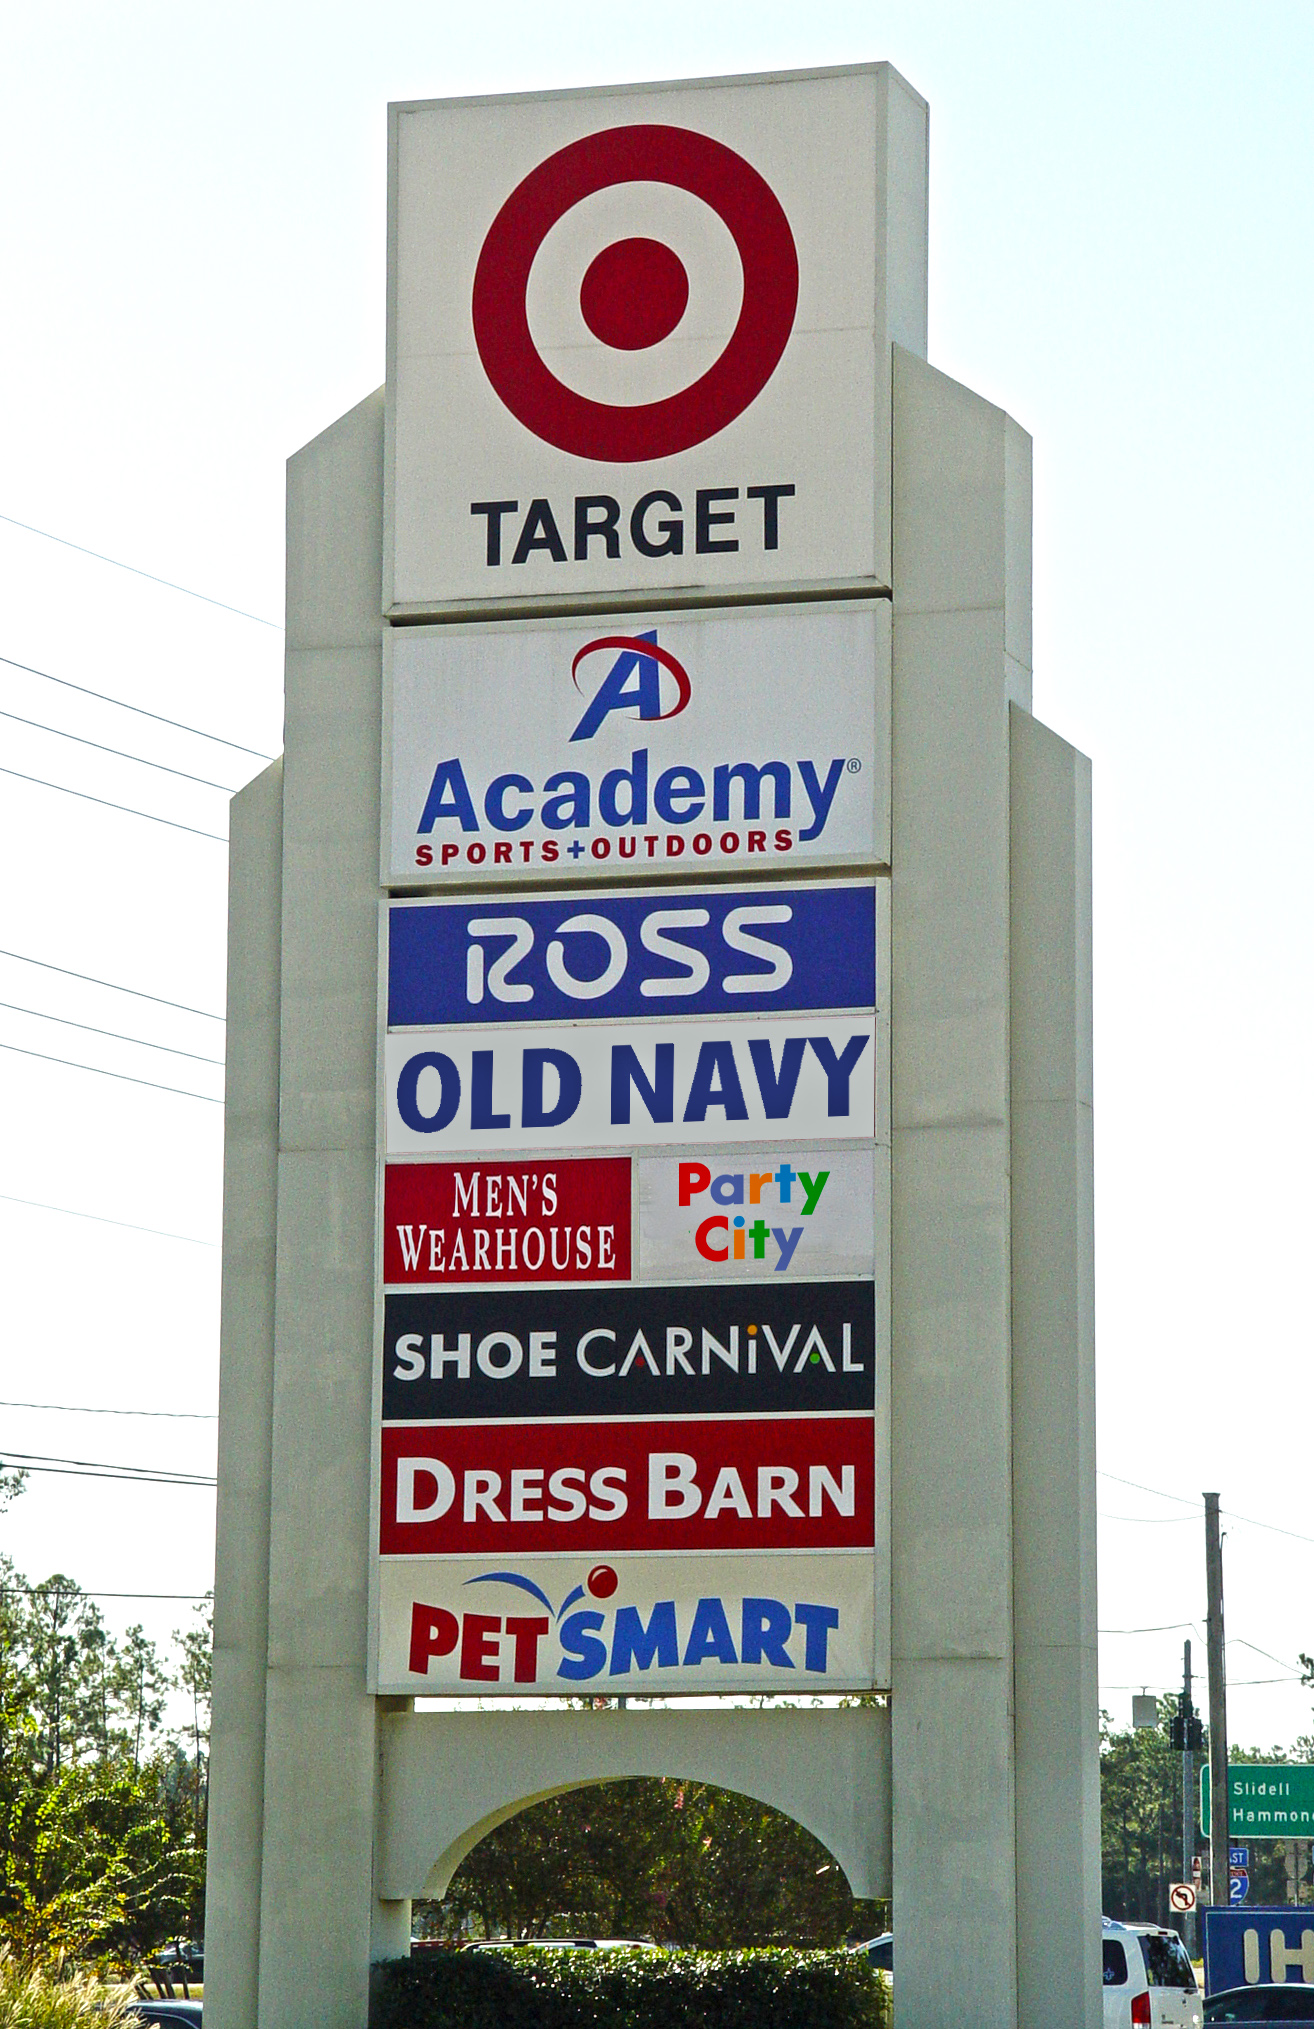 Best Home Goods Stores Party City Coming To Stirling Slidell Centre Stirling